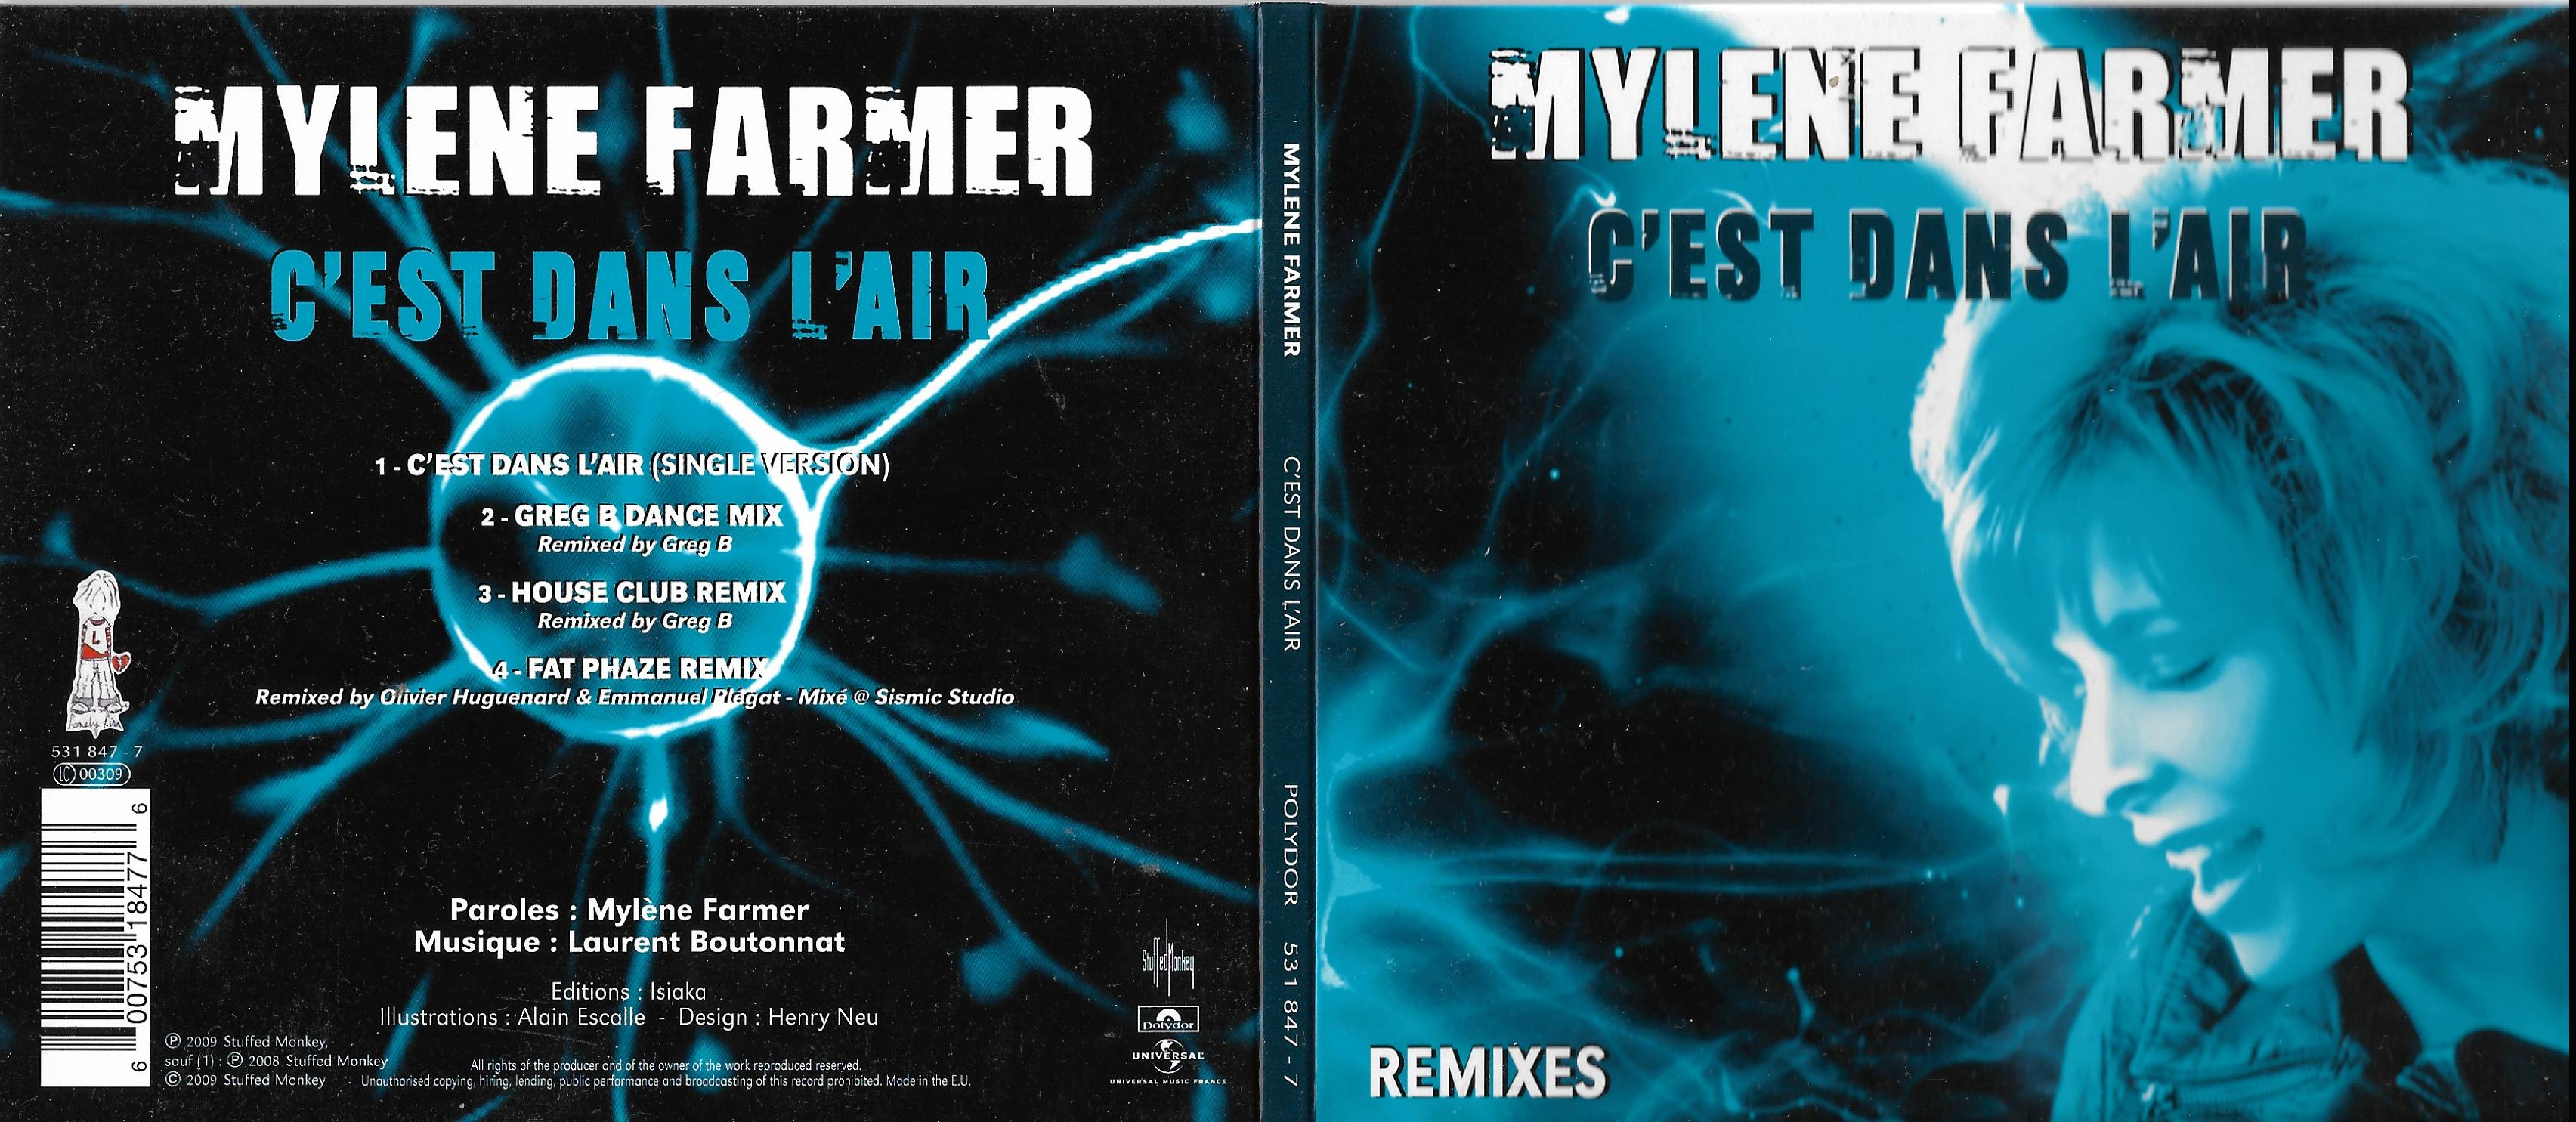 MYLÈNE FARMER - Oui mais... non REMIXES LTD ED 5-track - 12 inch 45 rpm